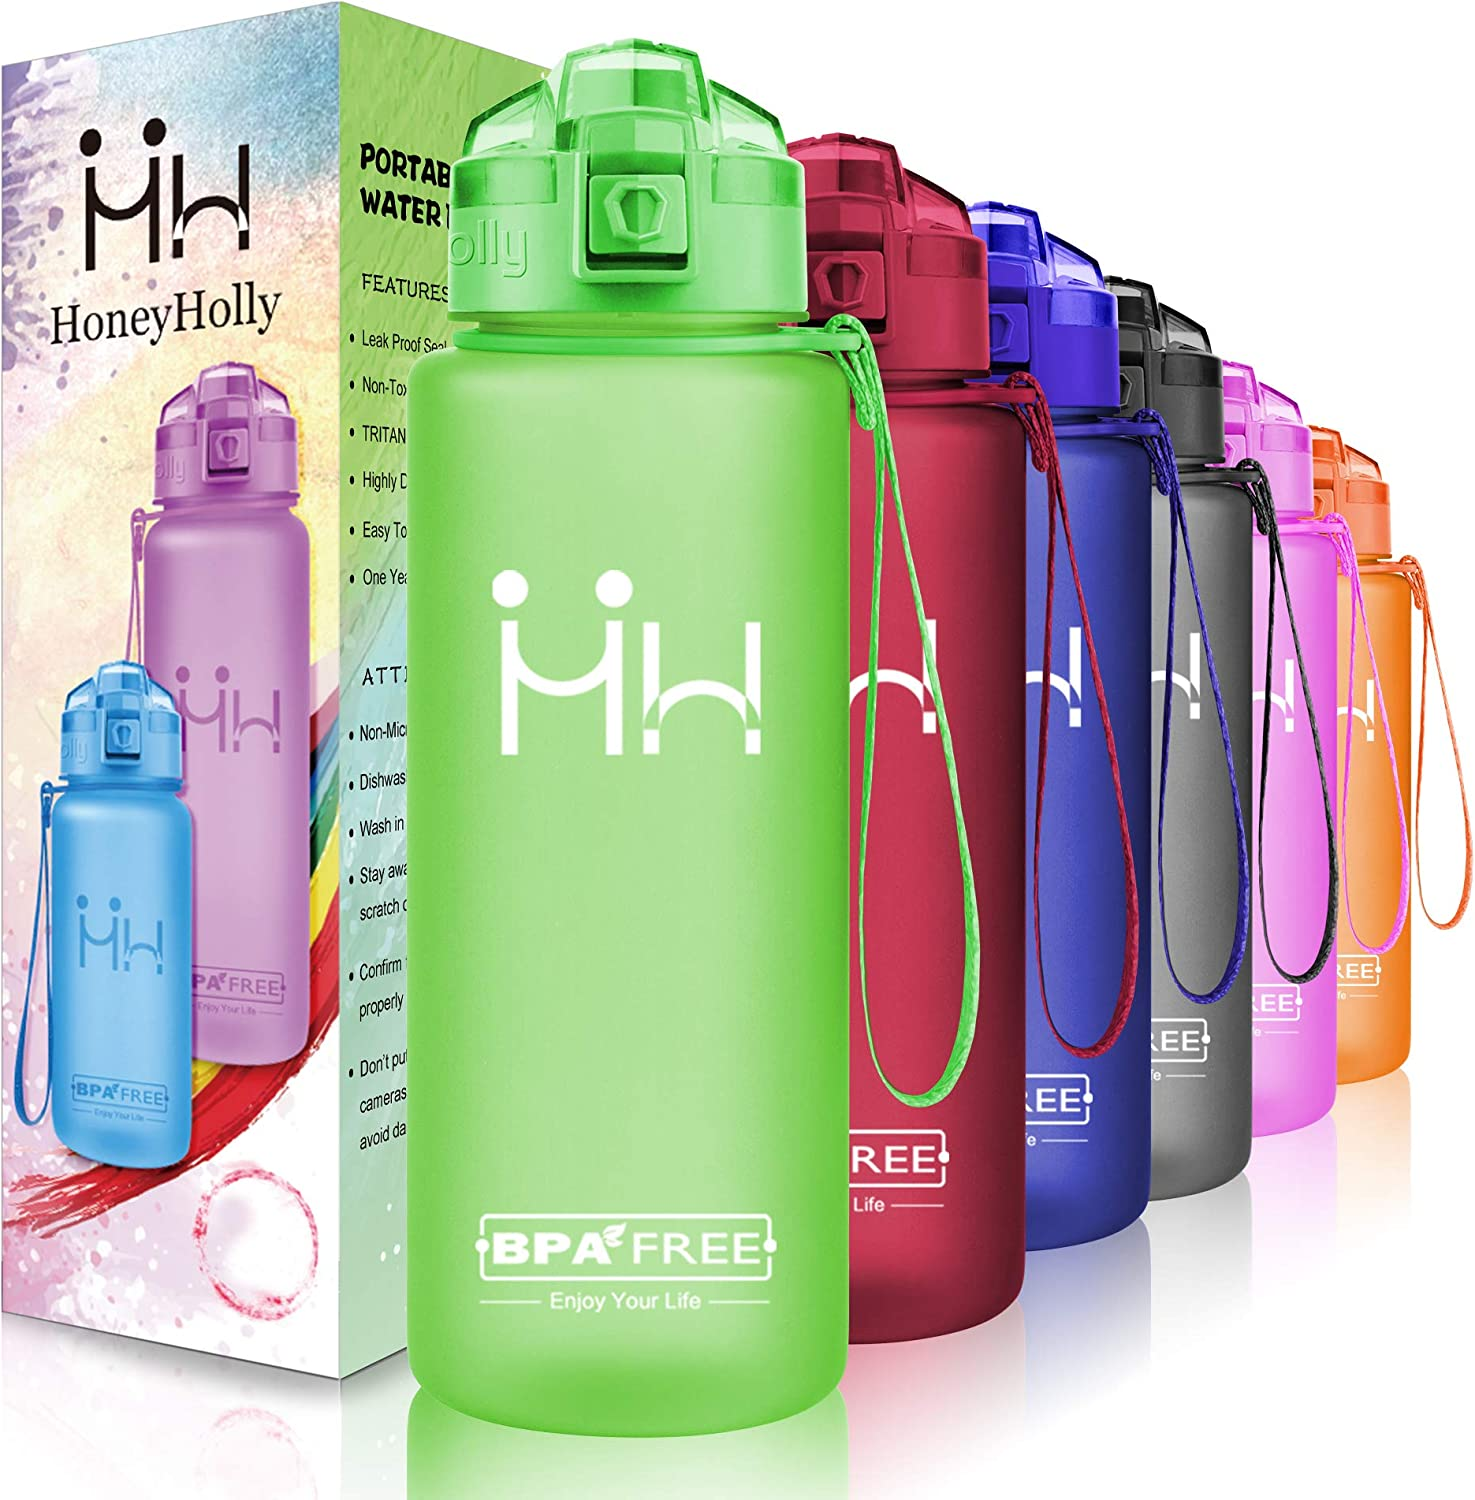 HoneyHolly Portable Sports Water Bottle-Leak Proof Kids Water Bottle Reusable Container,One Click Flip Cap14 17 24 26 32 50Ounce,for Outdoor Camping Running Gym,Non Toxic,BPA-Free Tritan Plastic